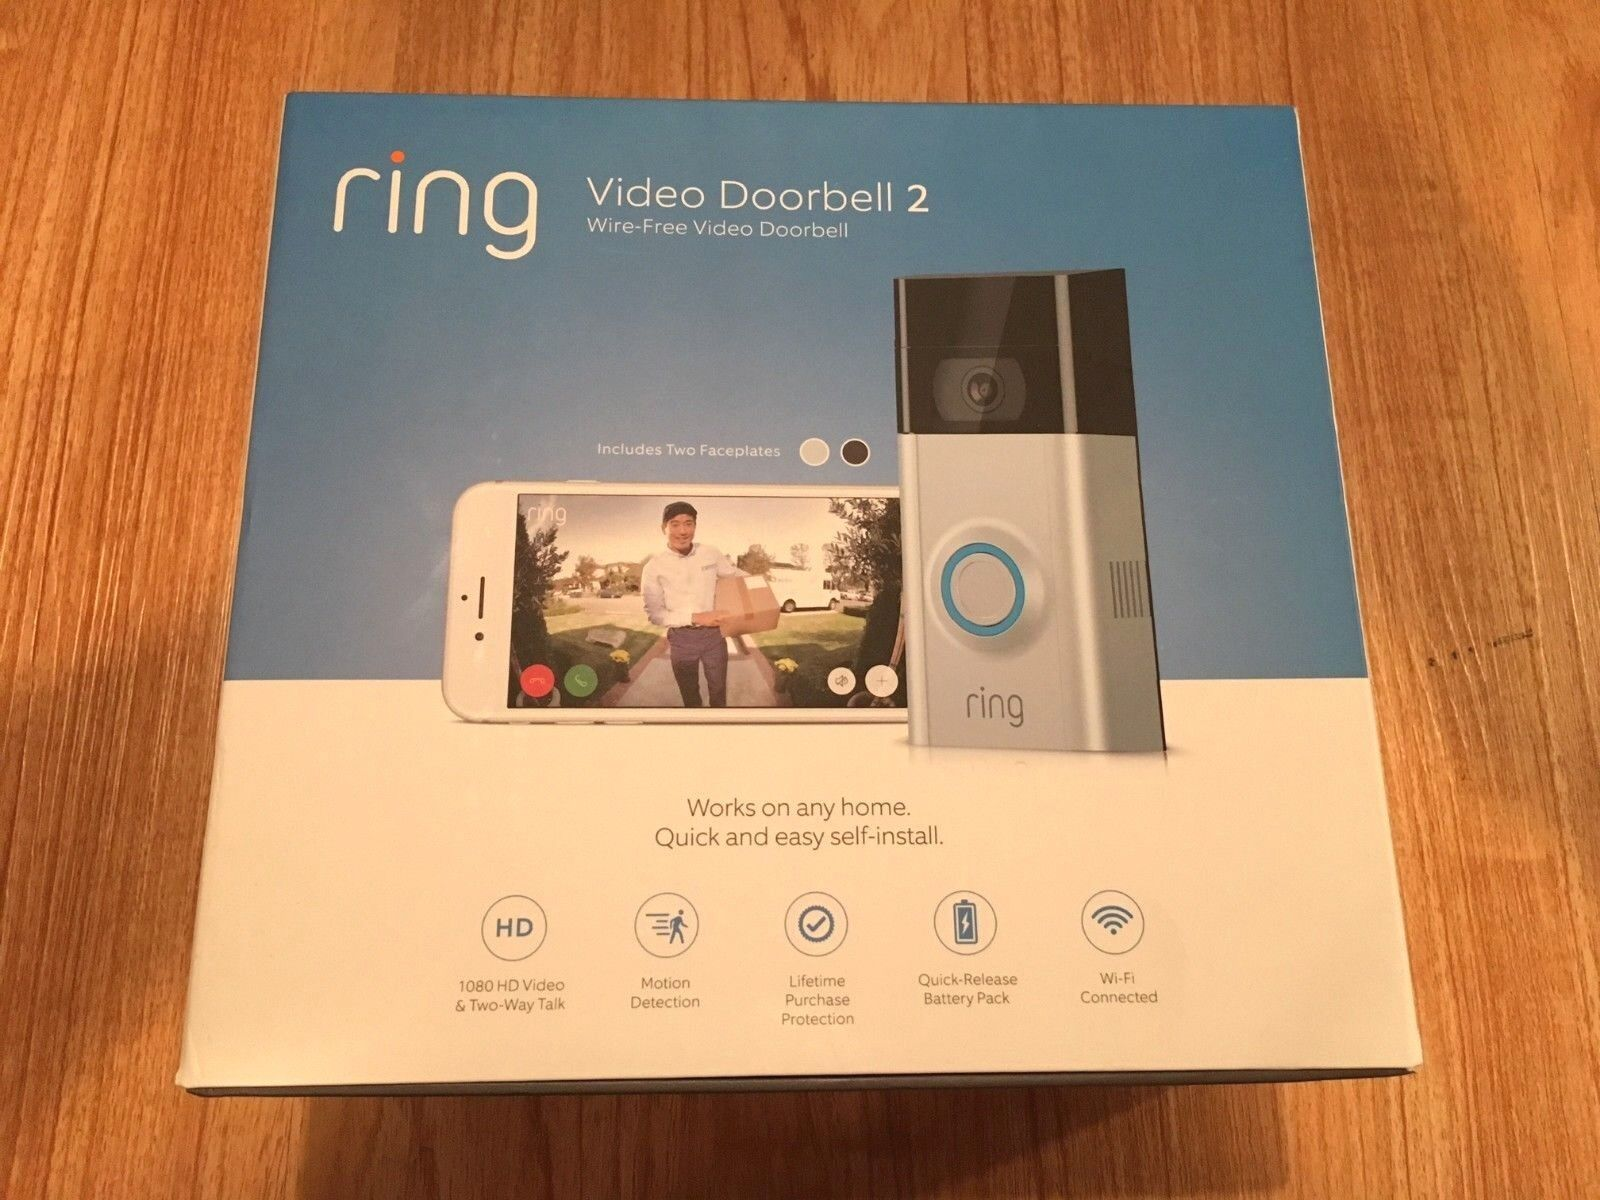 Ring - NEW RING DOORBELL 2 VIDEO WI-FI 2 WAY TALK 1080 HD CAMERA UPDATED FREE SHIP